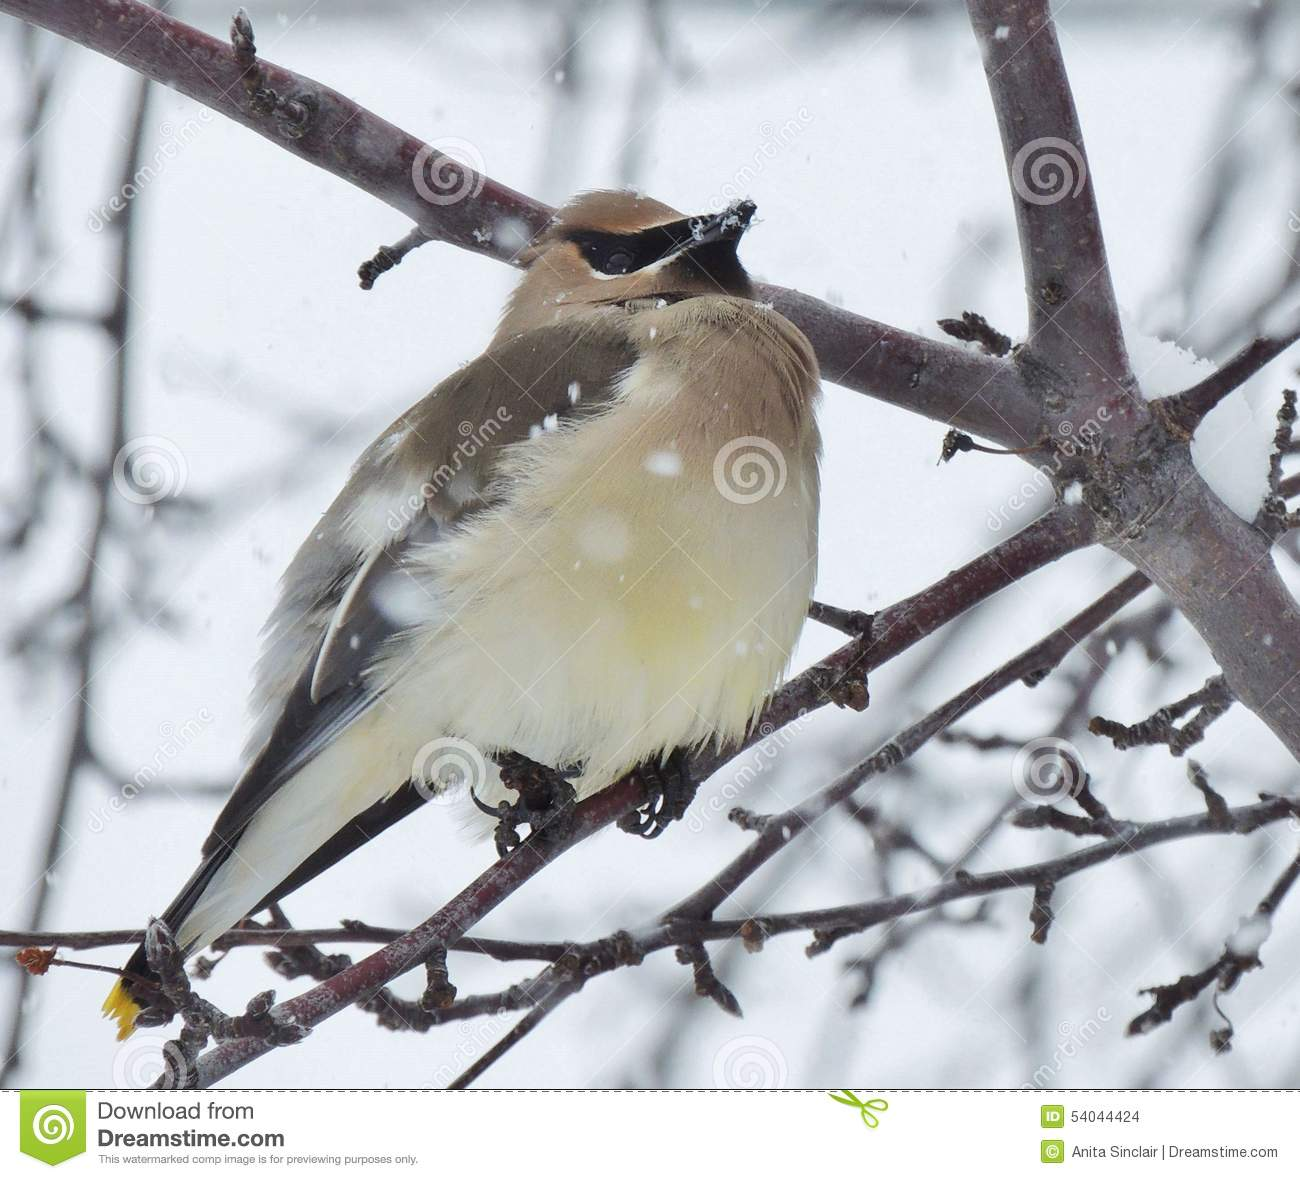 A small bird, a Bohemian Waxwing, perches among the branches of a barren tree on a snowy day